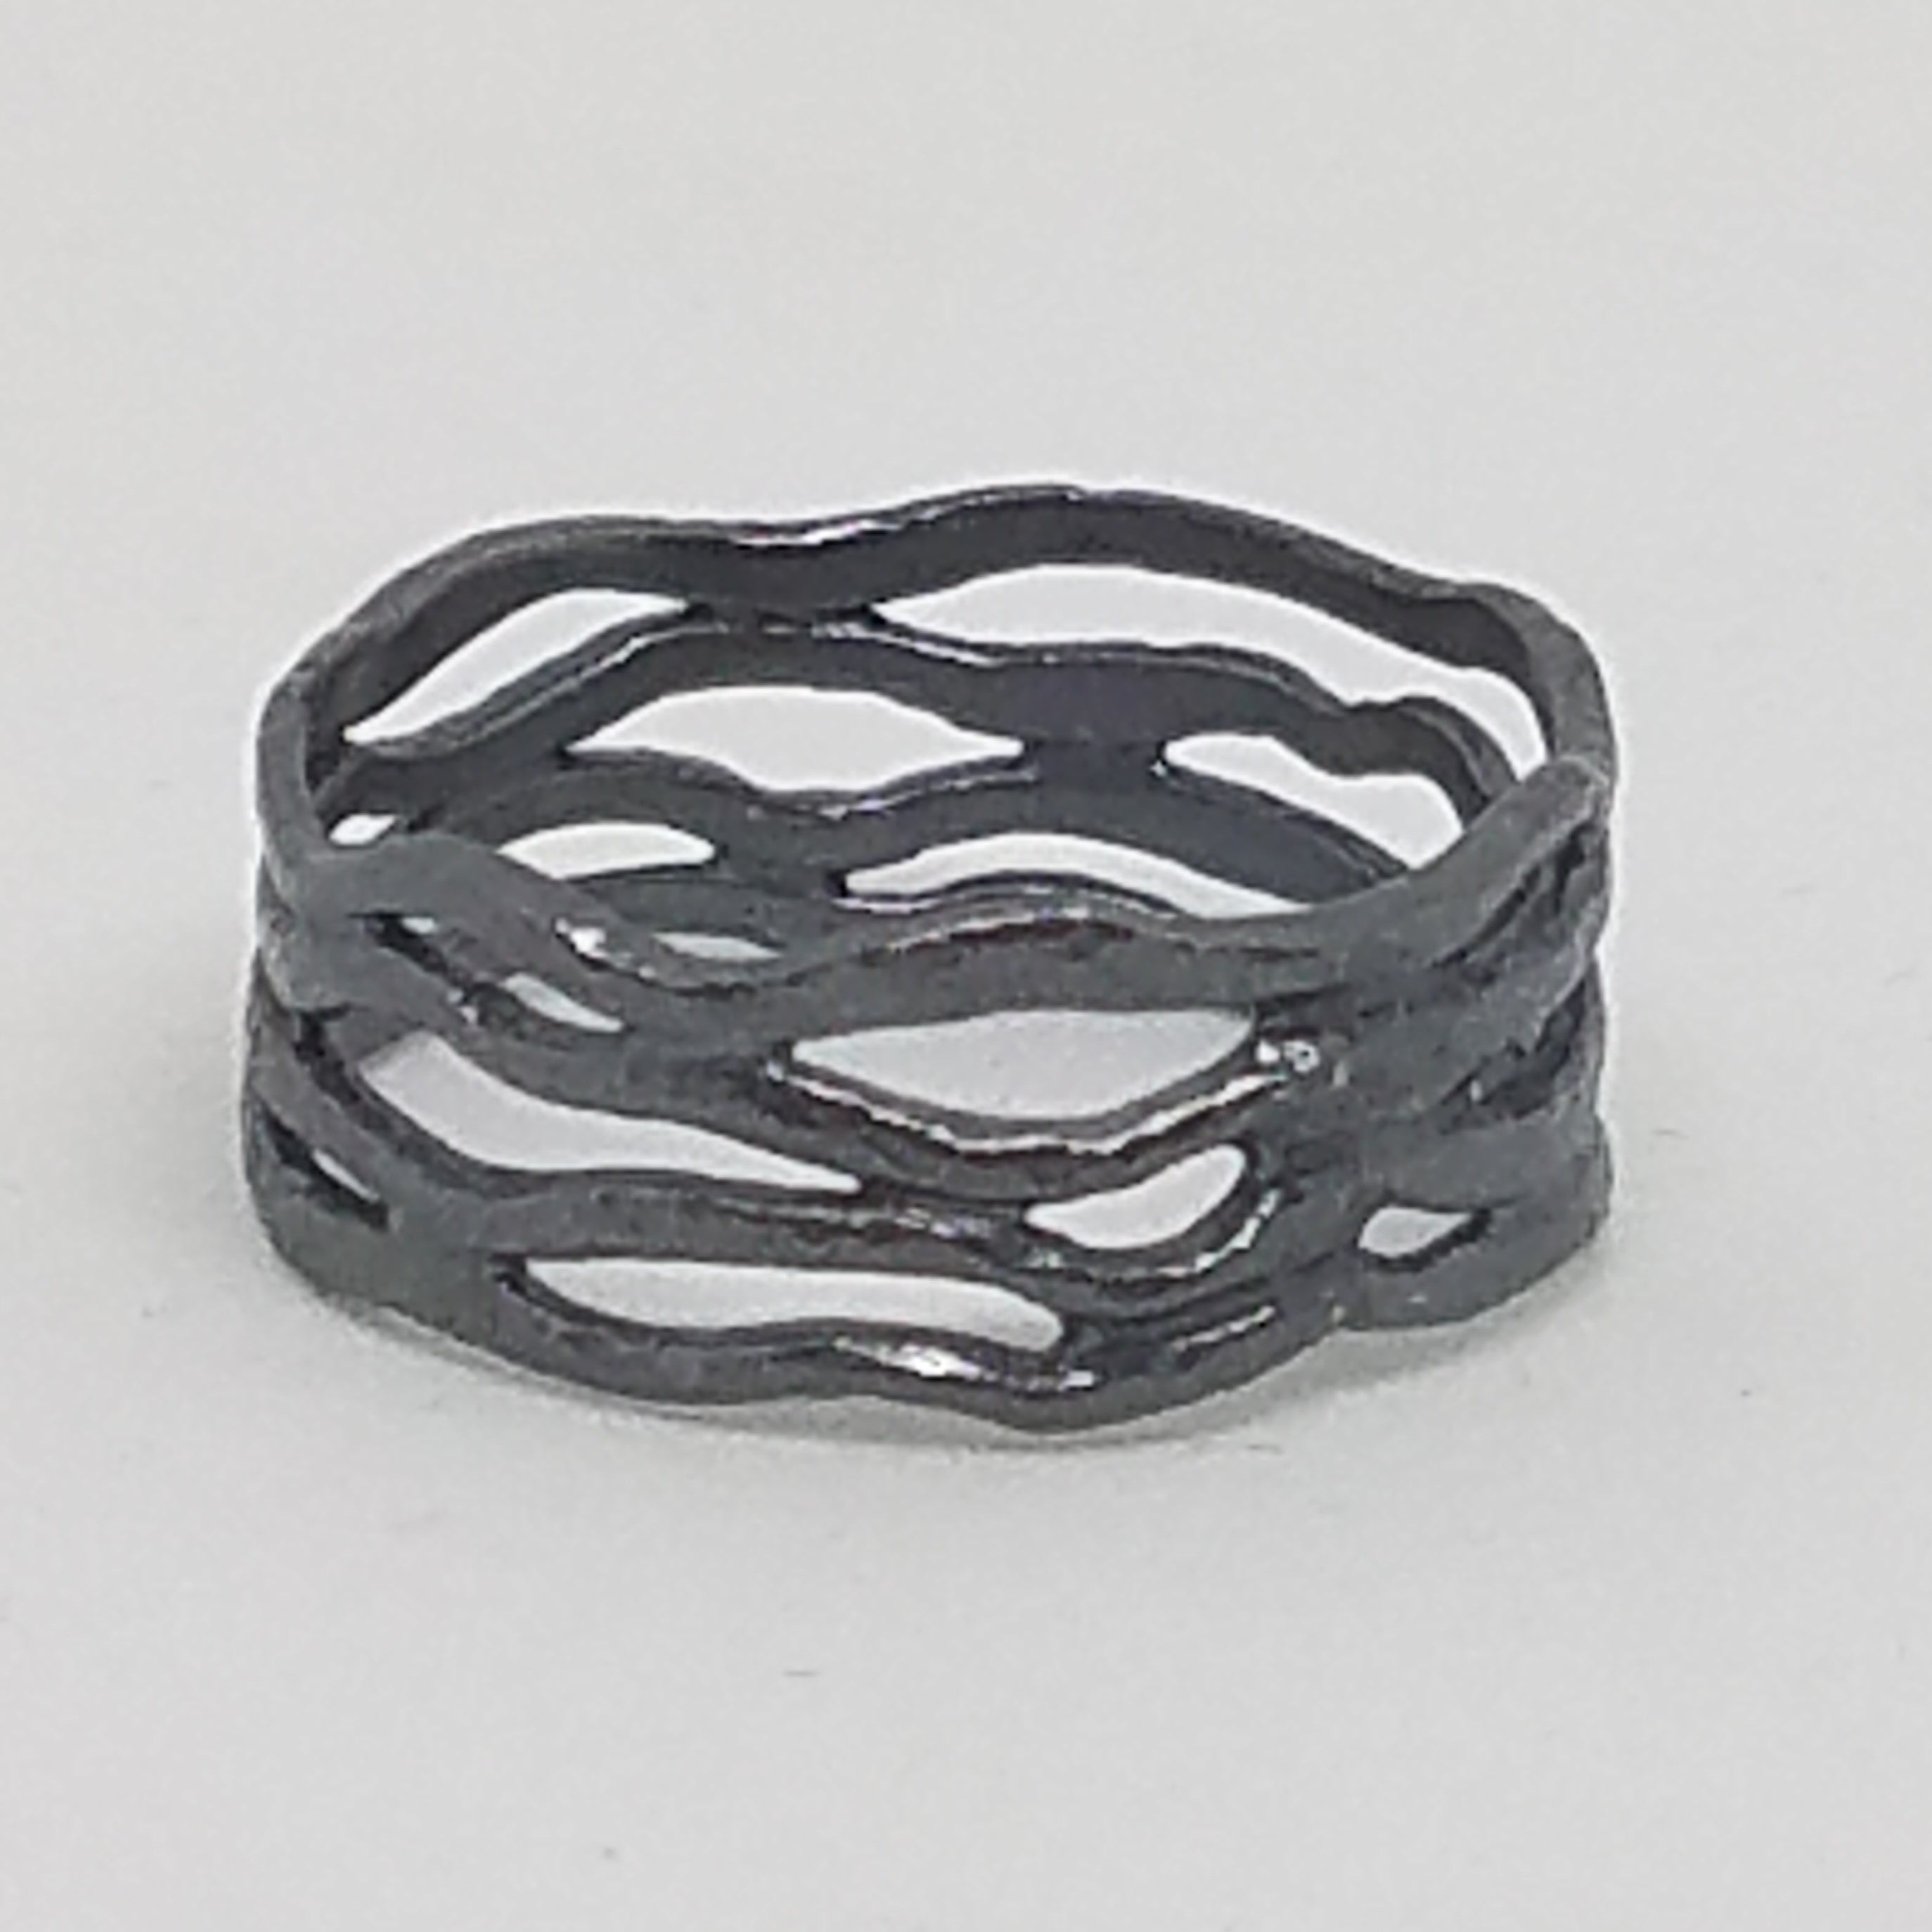 Oxidized Silver Ocean Waves Band